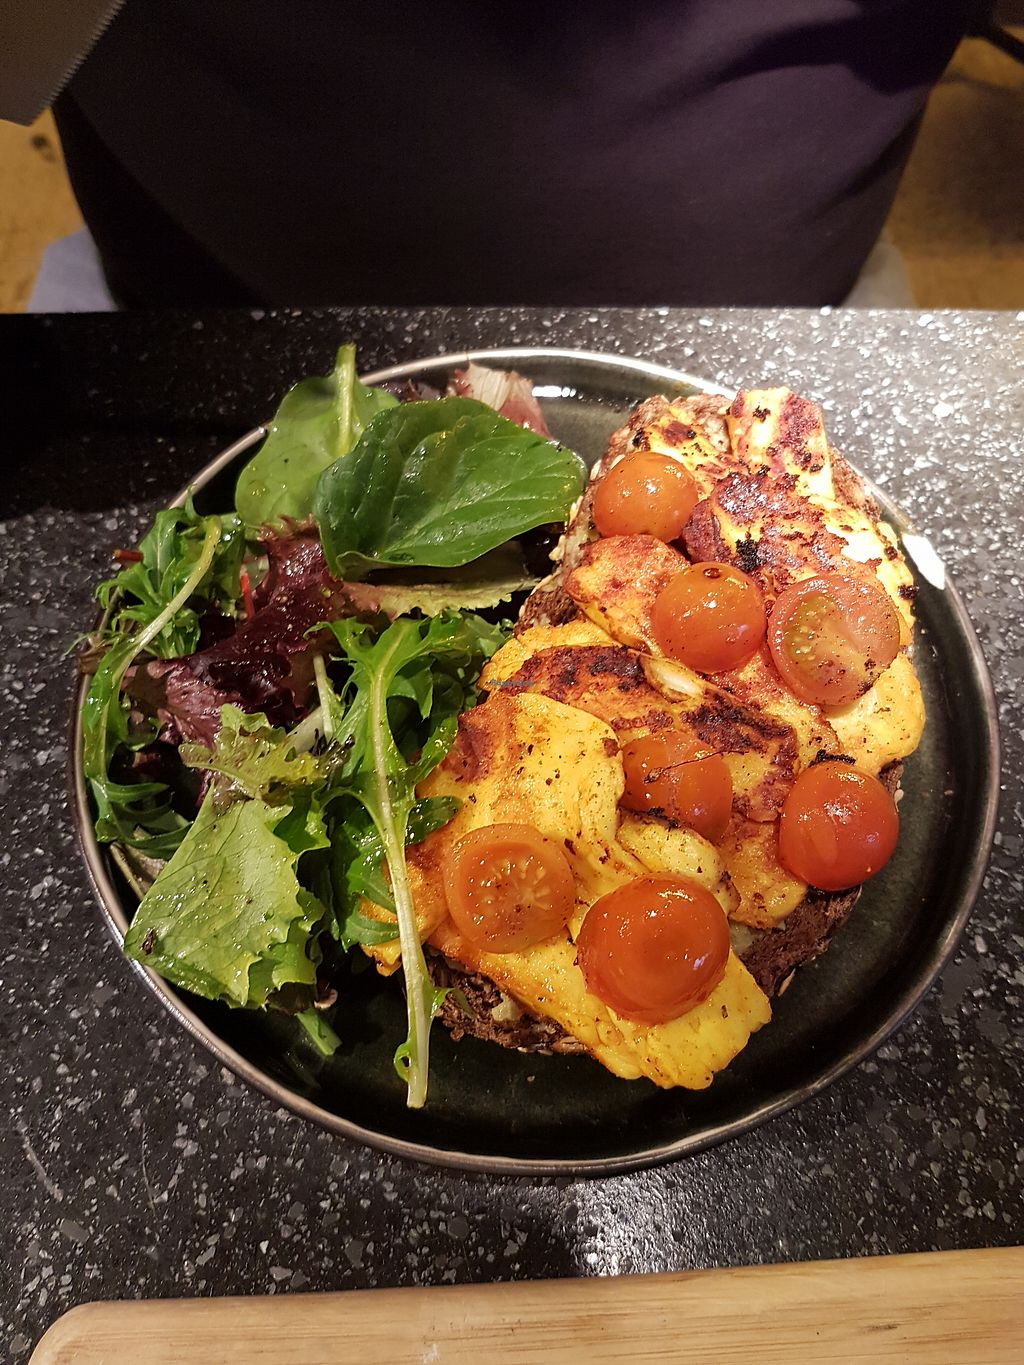 """Photo of Coffeelabs  by <a href=""""/members/profile/Liesbeth"""">Liesbeth</a> <br/>Grilled halloumi <br/> March 15, 2018  - <a href='/contact/abuse/image/75095/370906'>Report</a>"""